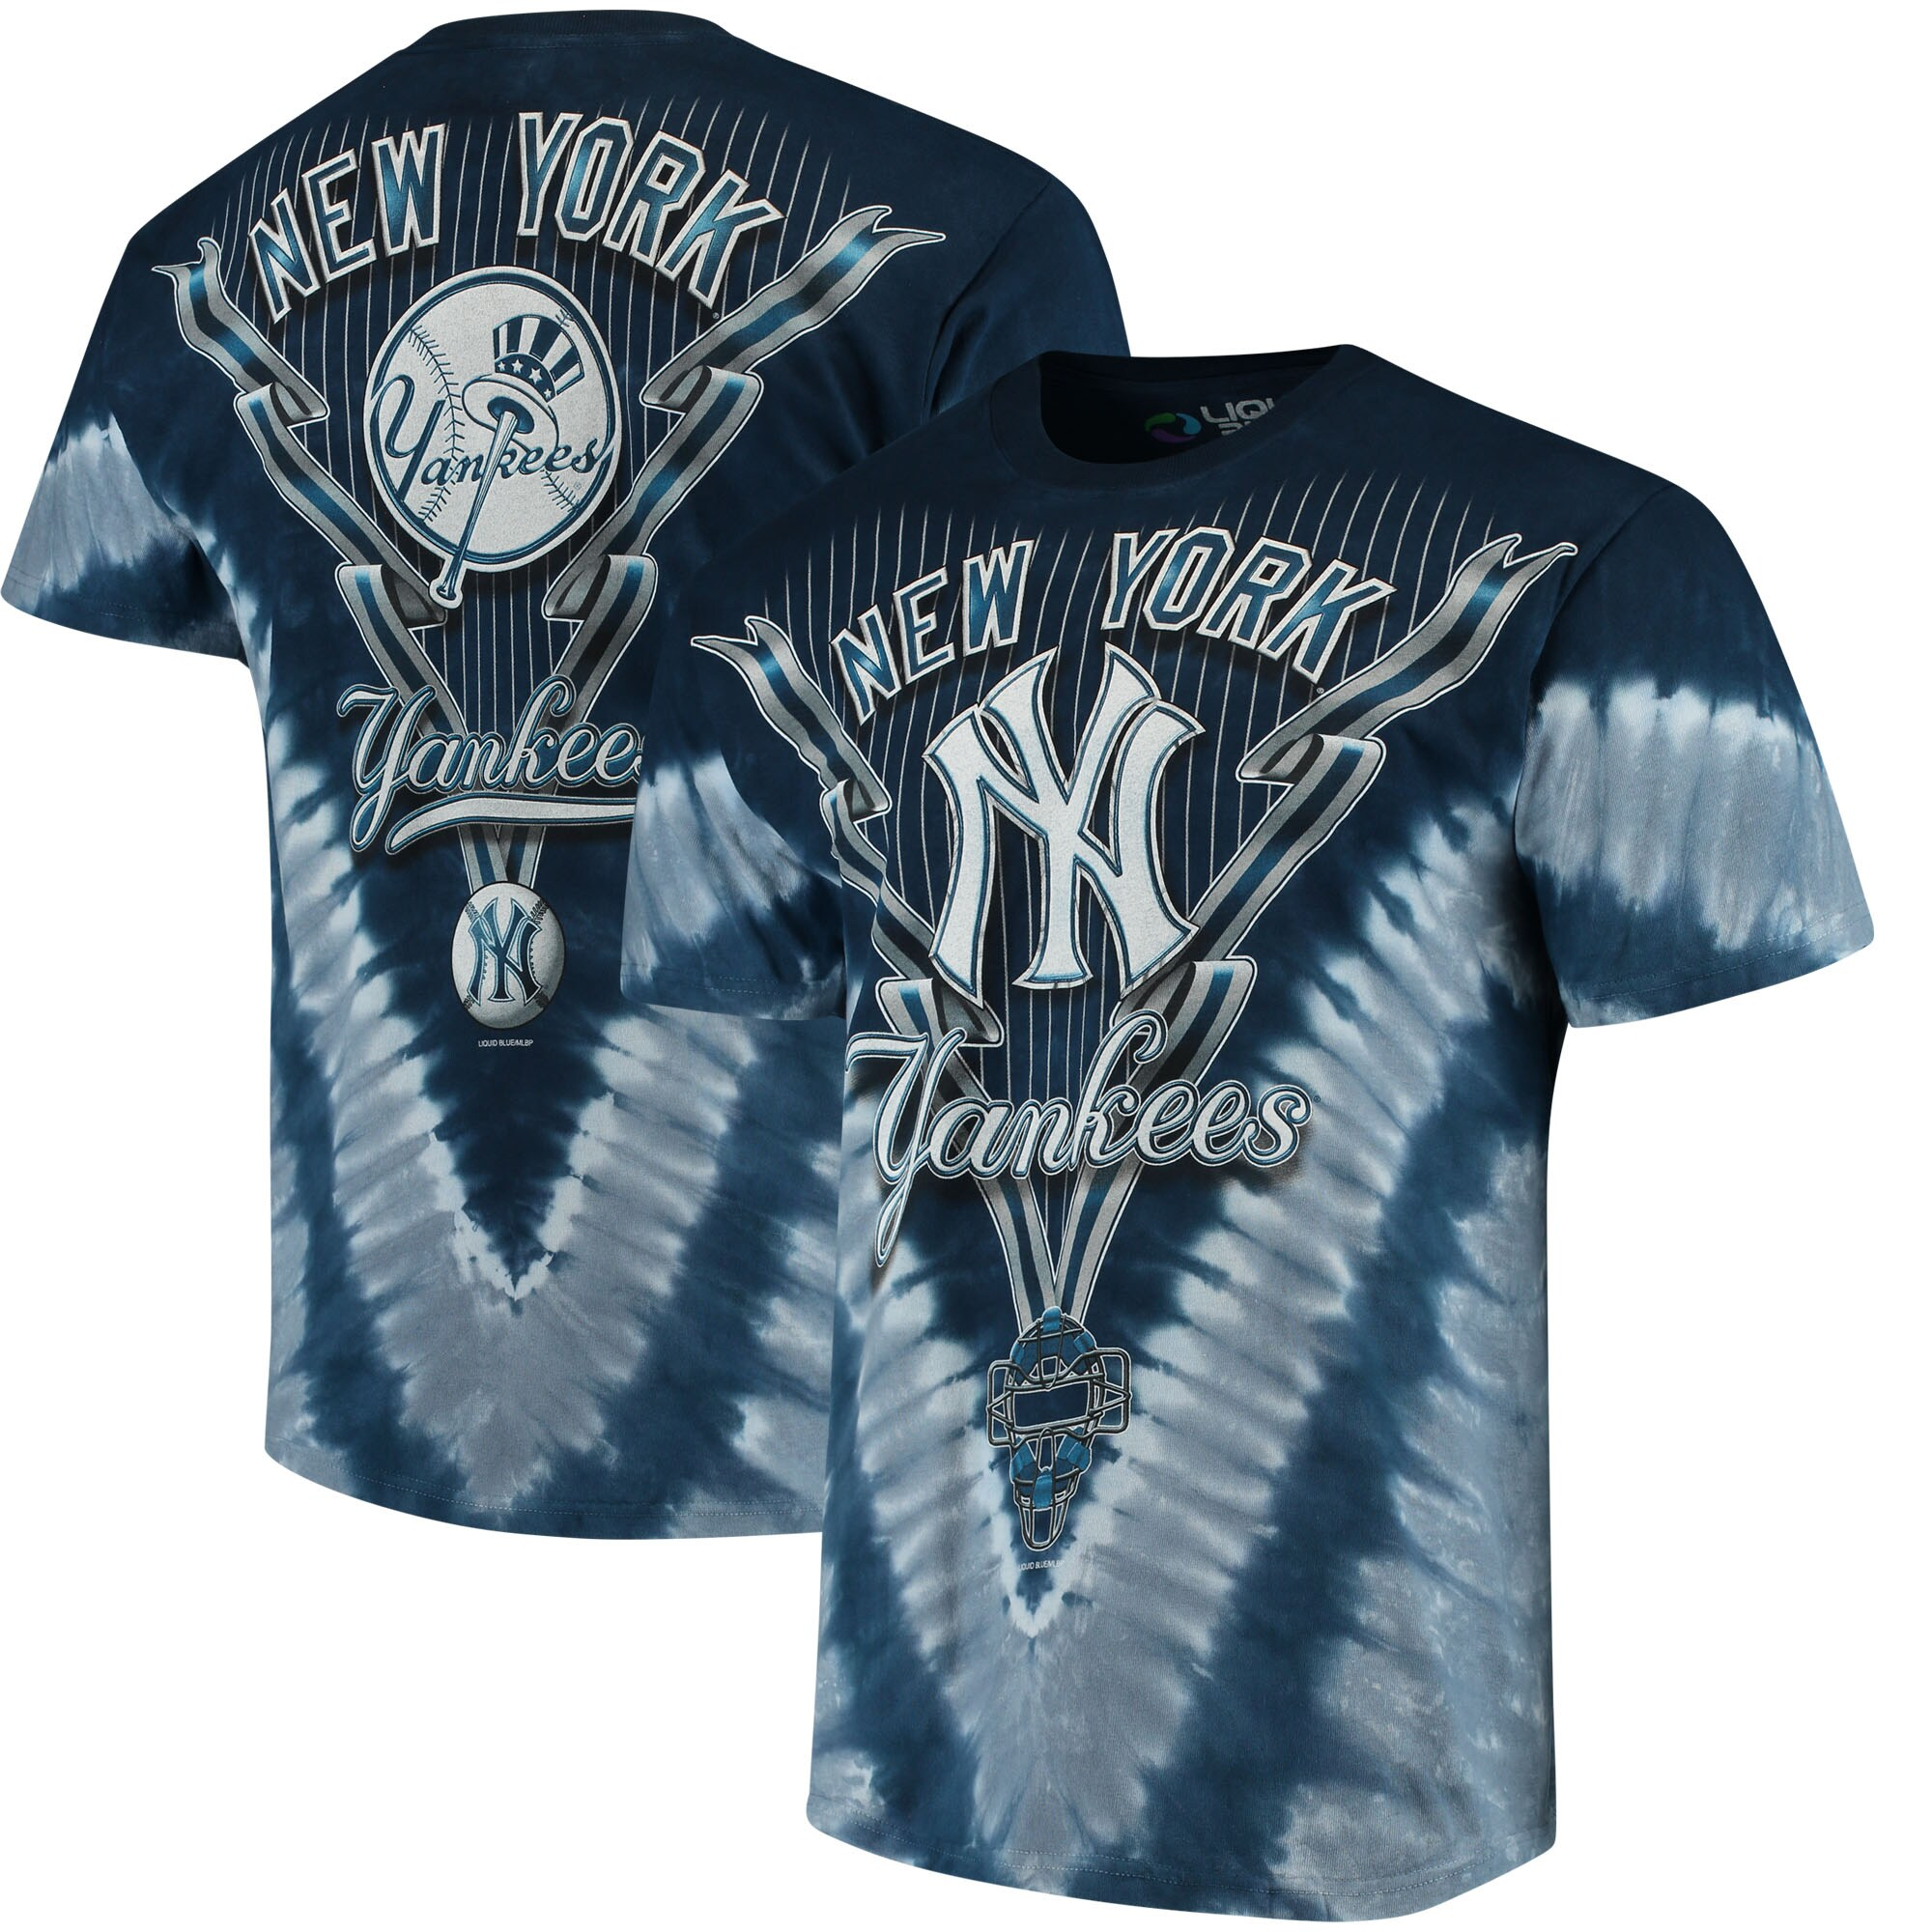 New York Yankees Tie-Dye T-Shirt - Navy Blue